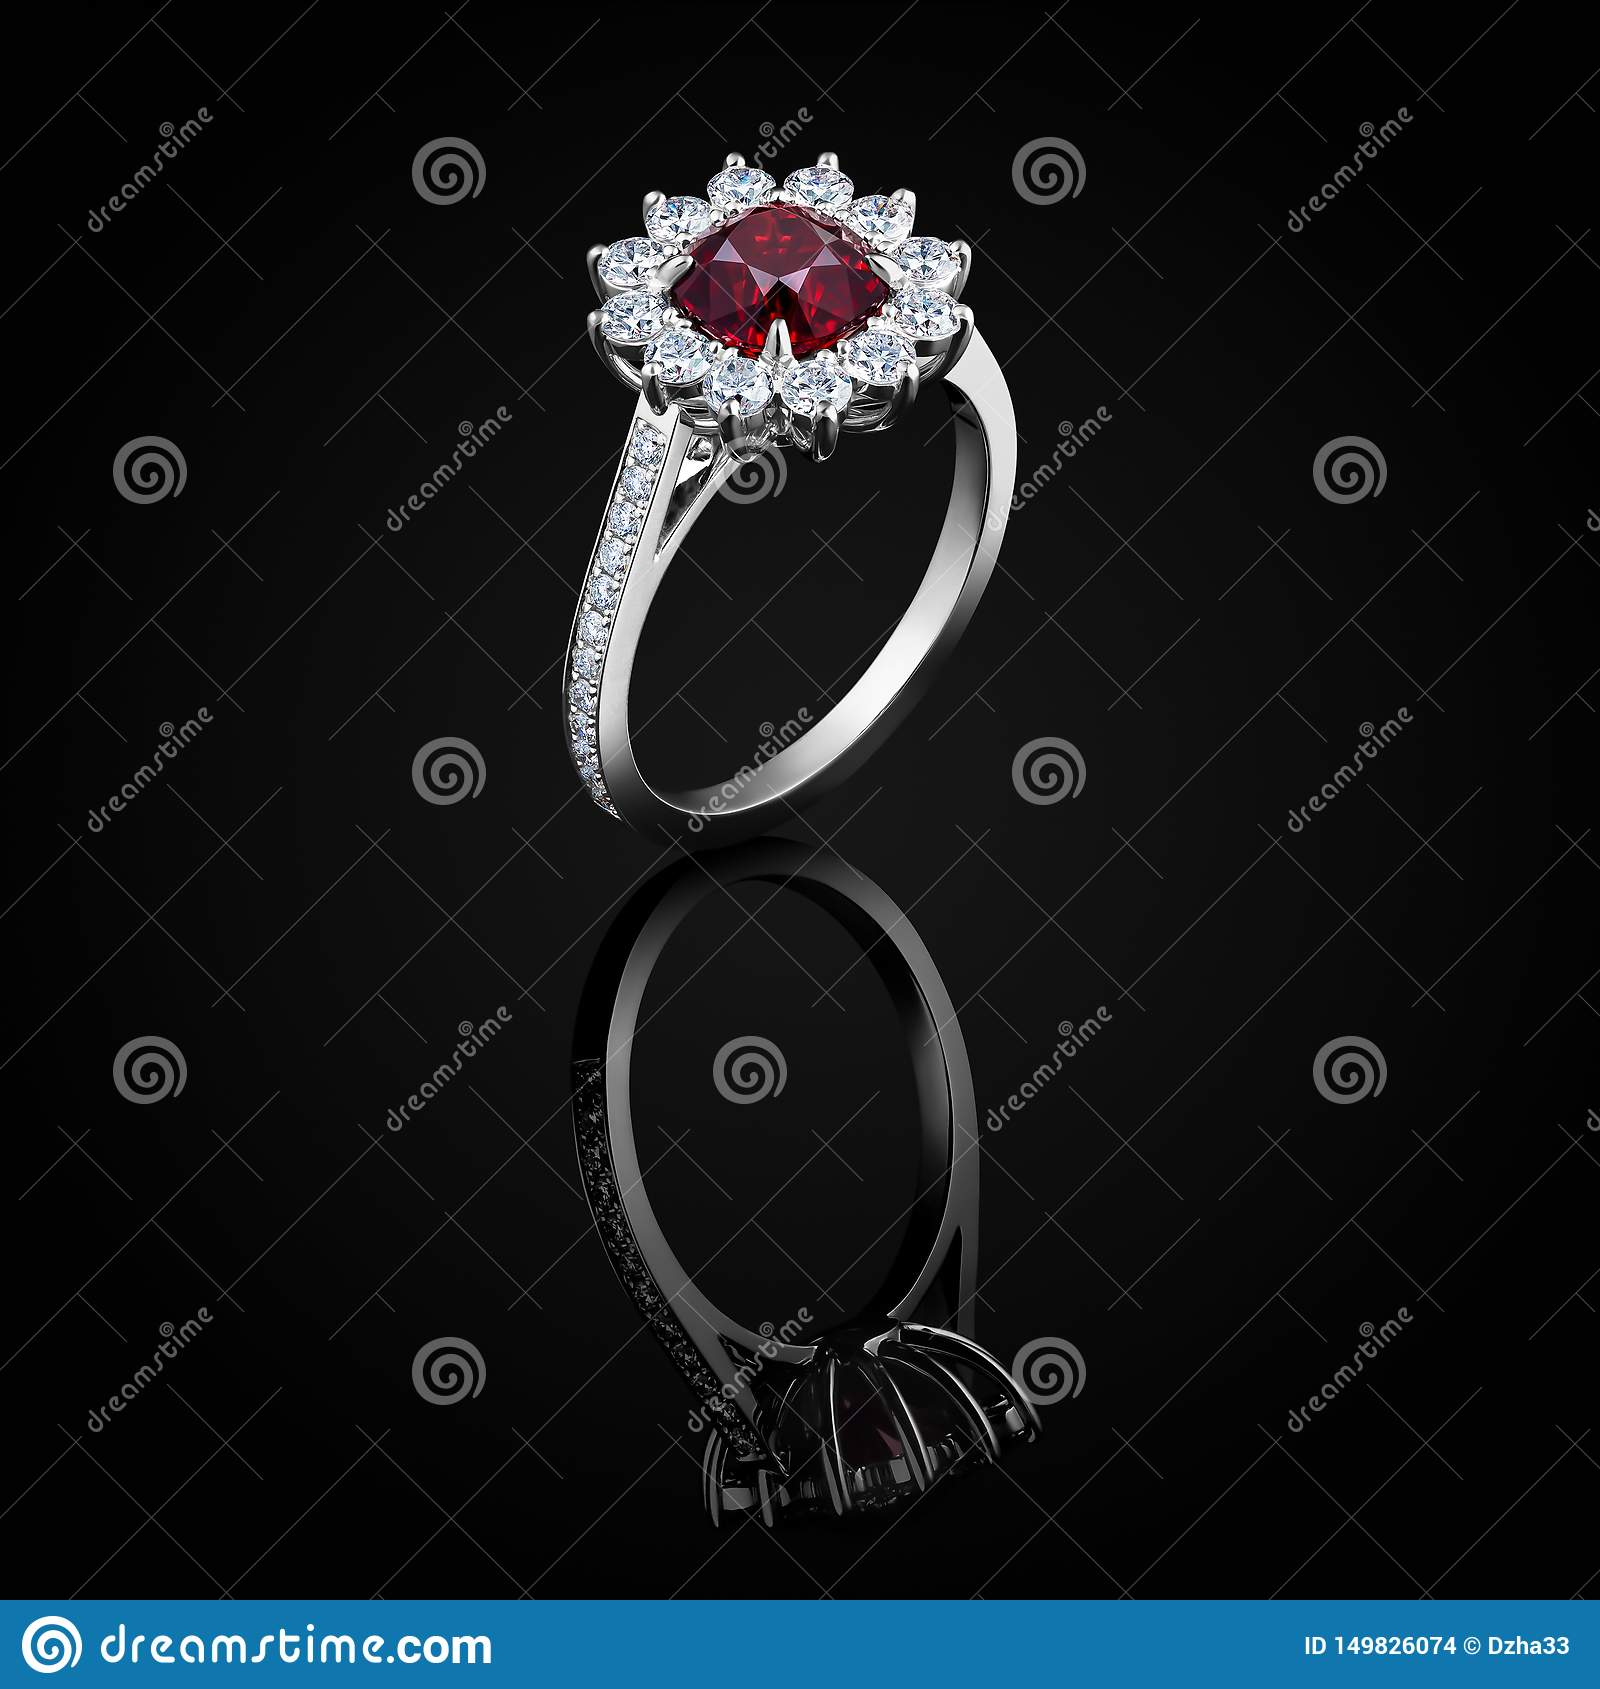 Diamond Ring With Luxury Red Ruby Sparkling Gemstone Isolated On